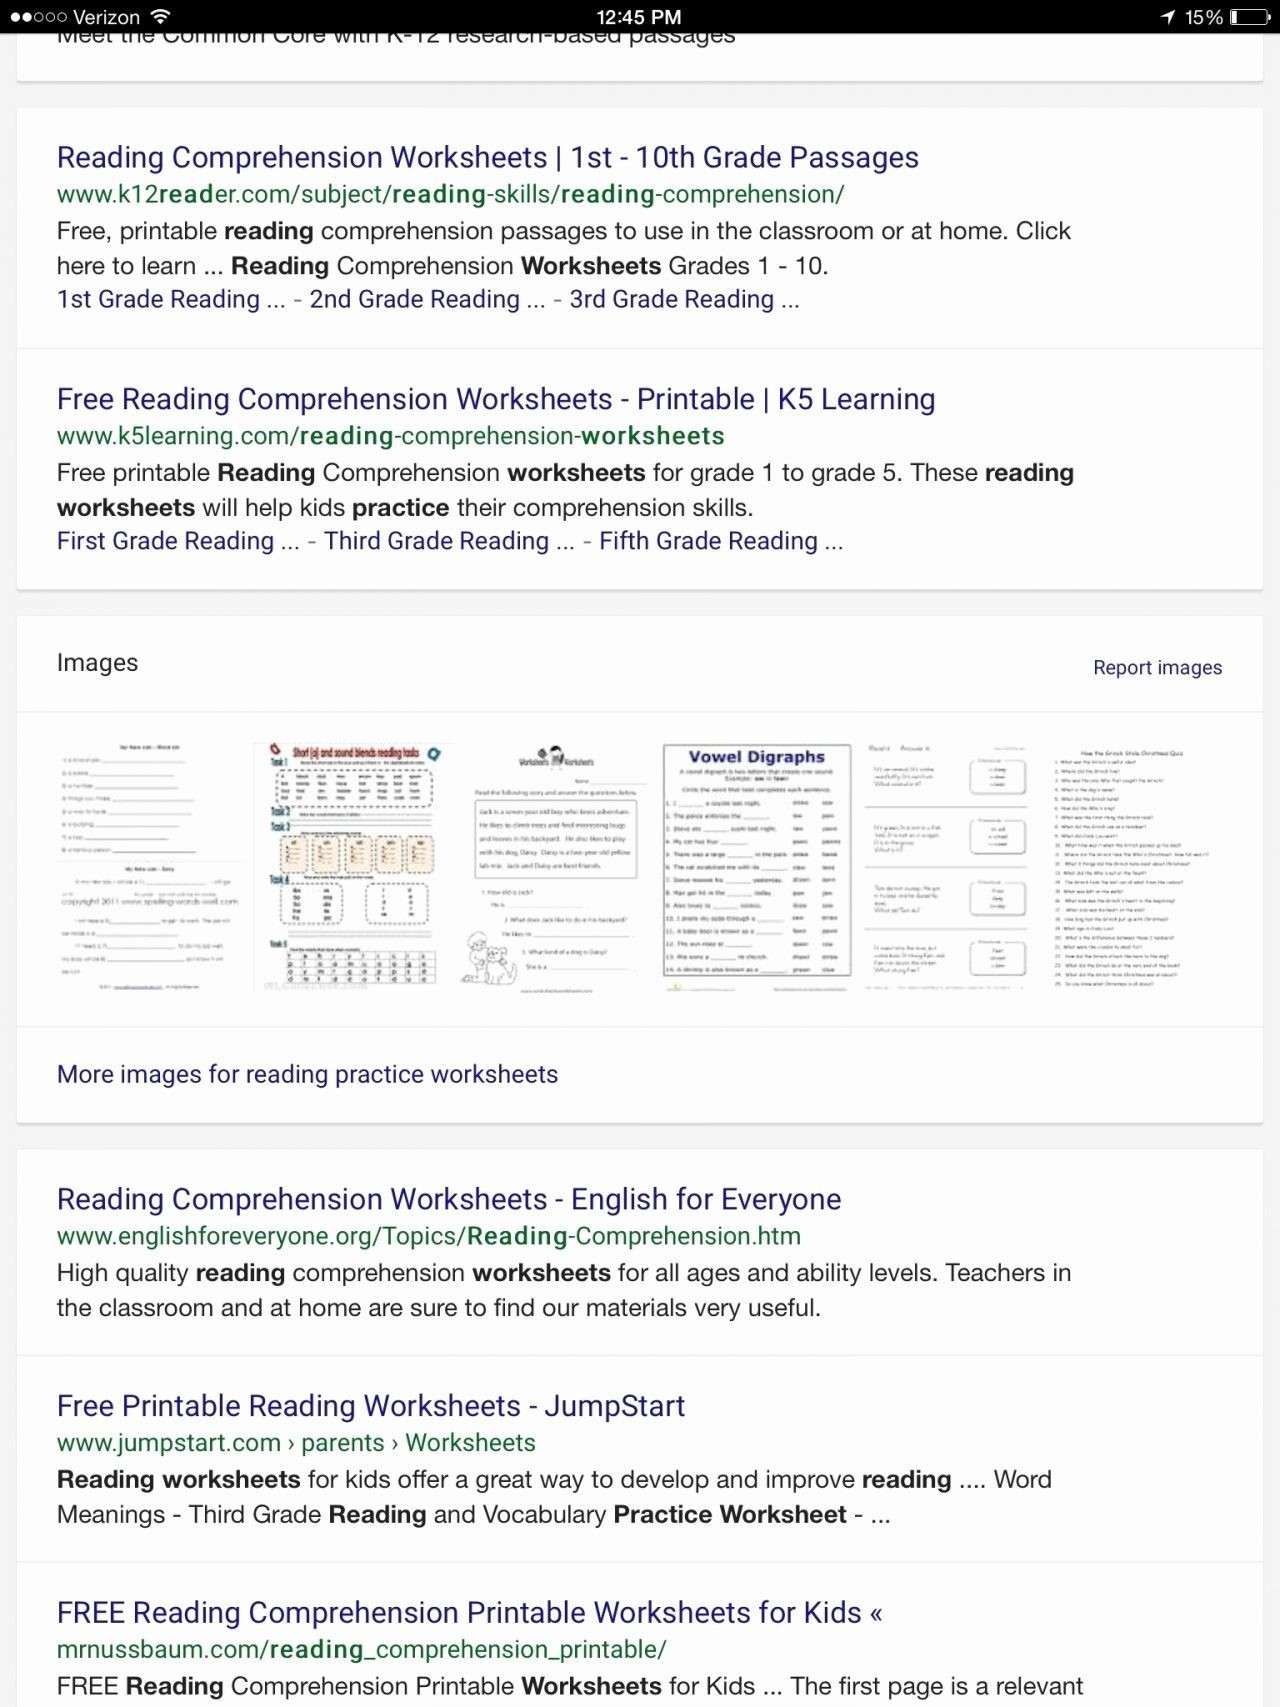 Year 2 Literacy Worksheets - 3Rd Grade Reading Comprehension   Printable Reading Worksheets 4Th Grade